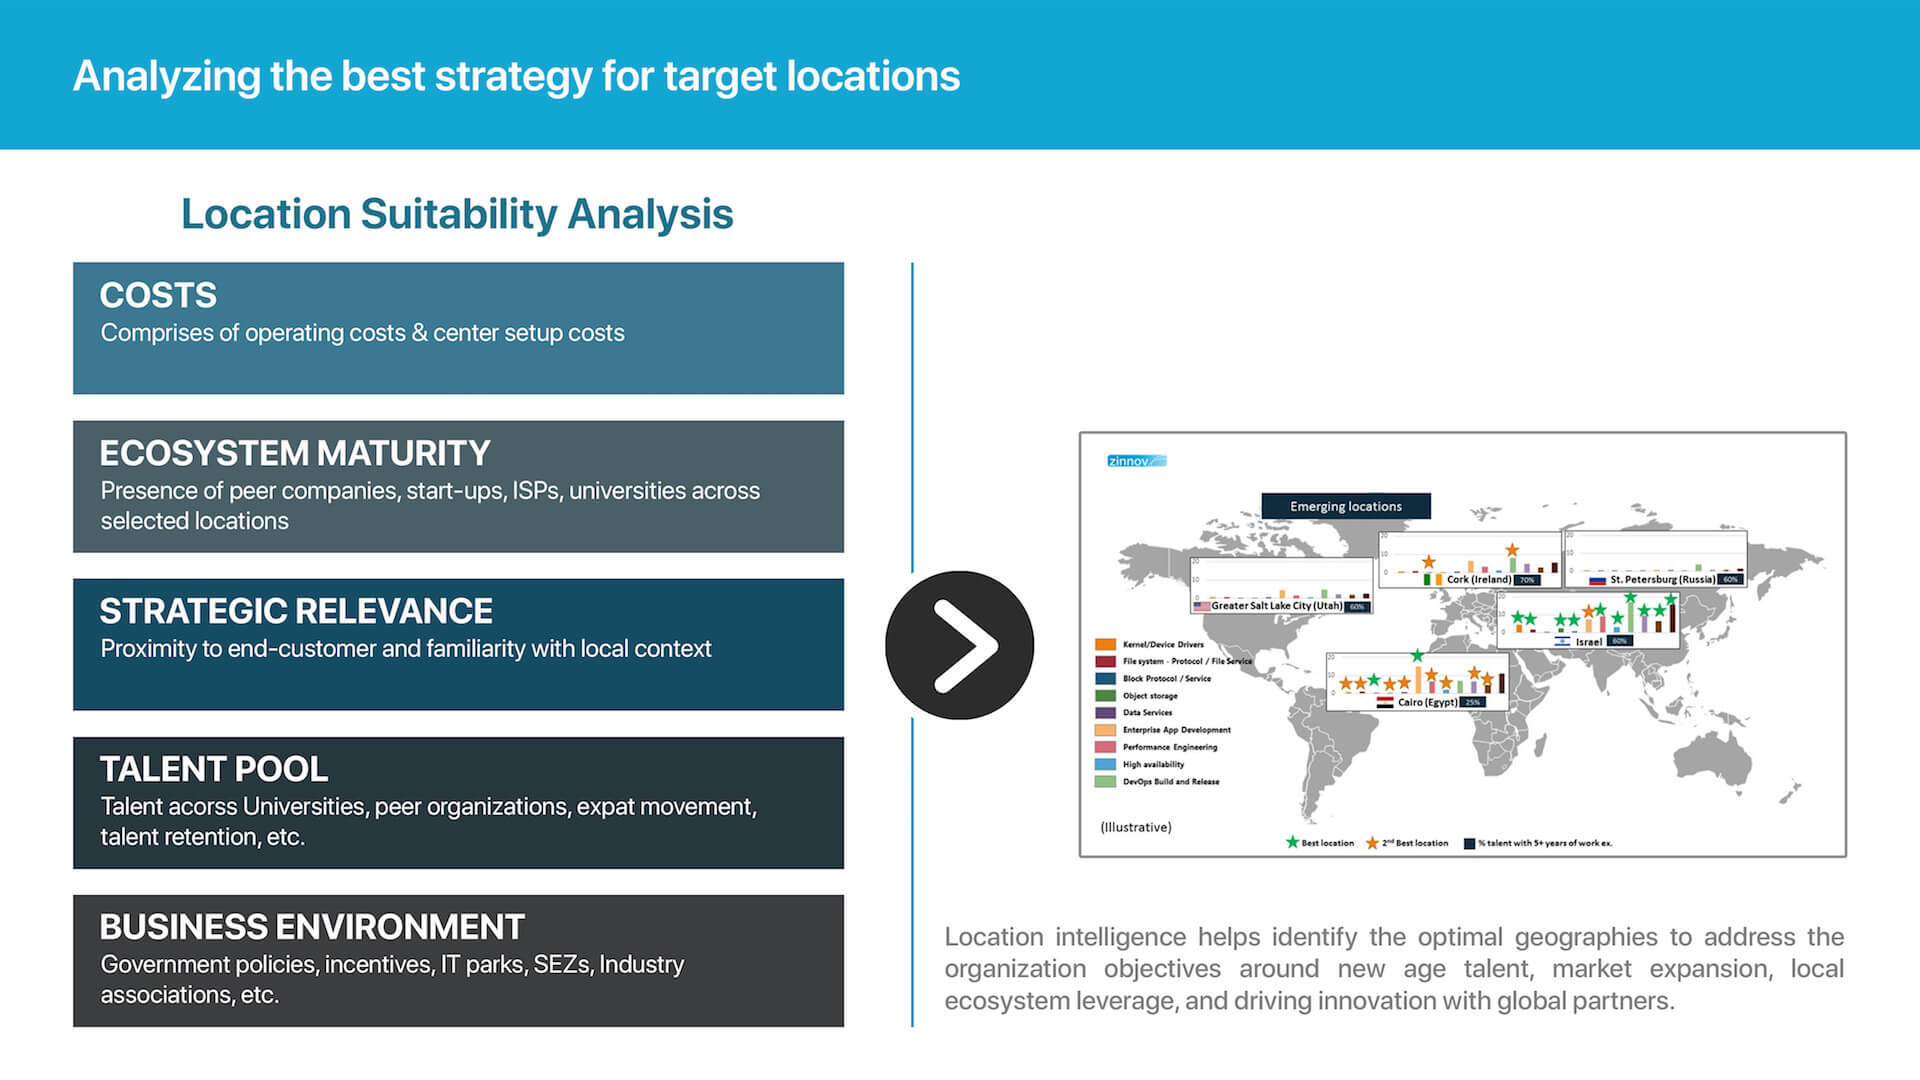 Global Location Intelligence